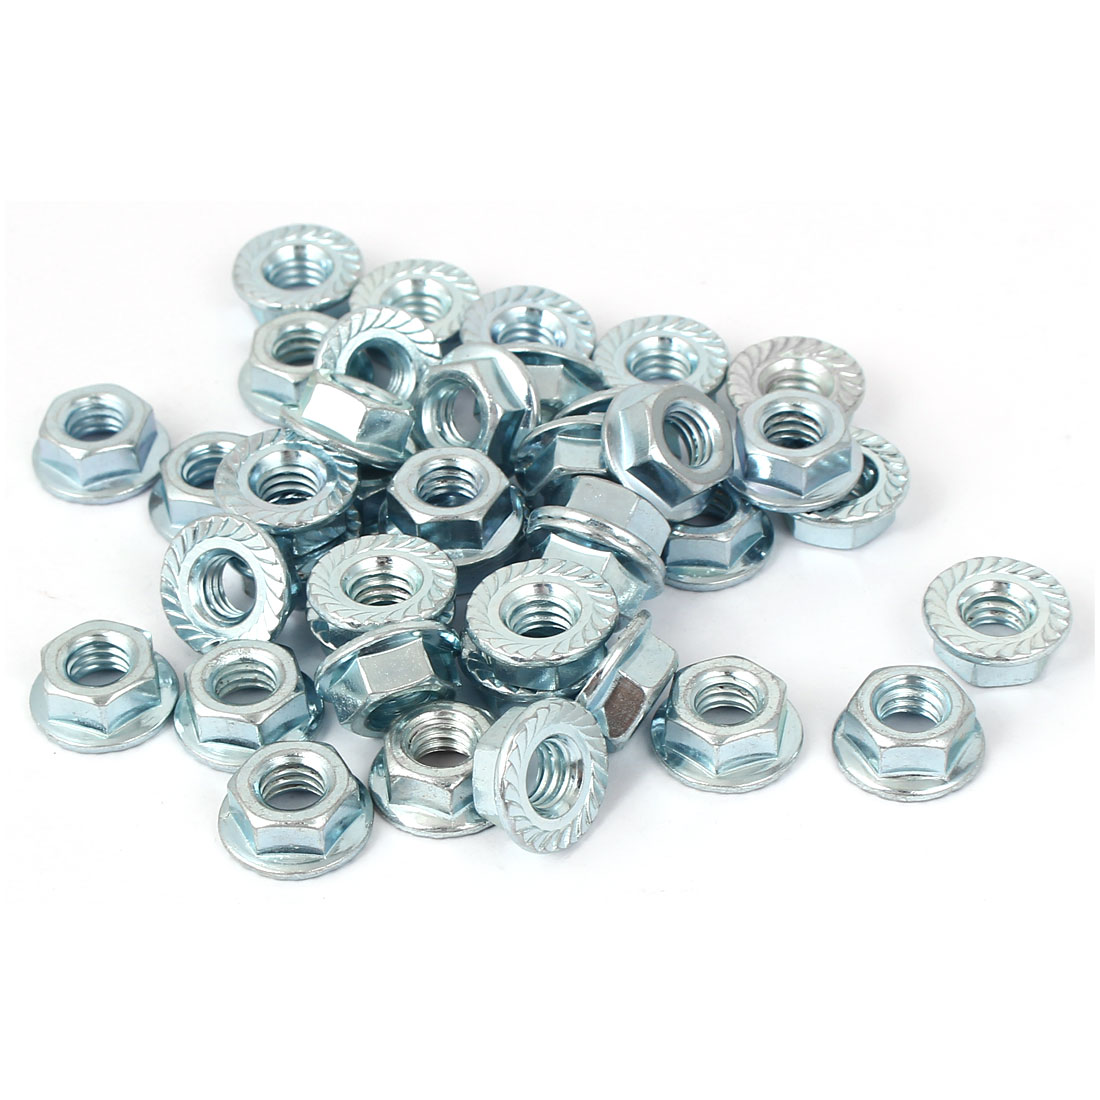 "5/16""x18 Carbon Steel Serrated Hex Flange Lock Nuts 40pcs"